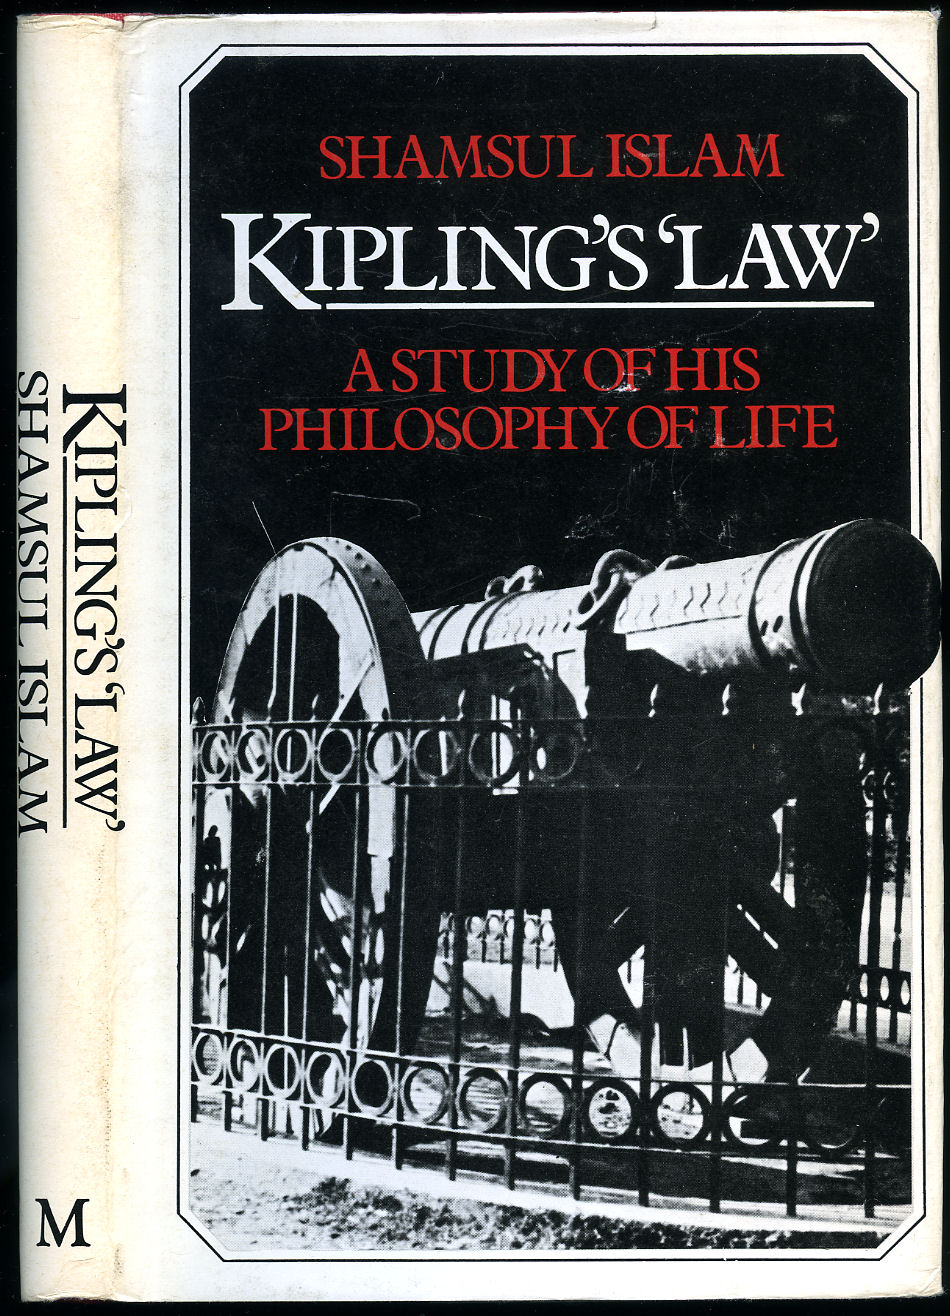 ISLAM, SHAMSUL - Kipling's Law; A Study of His Philosophy of Life